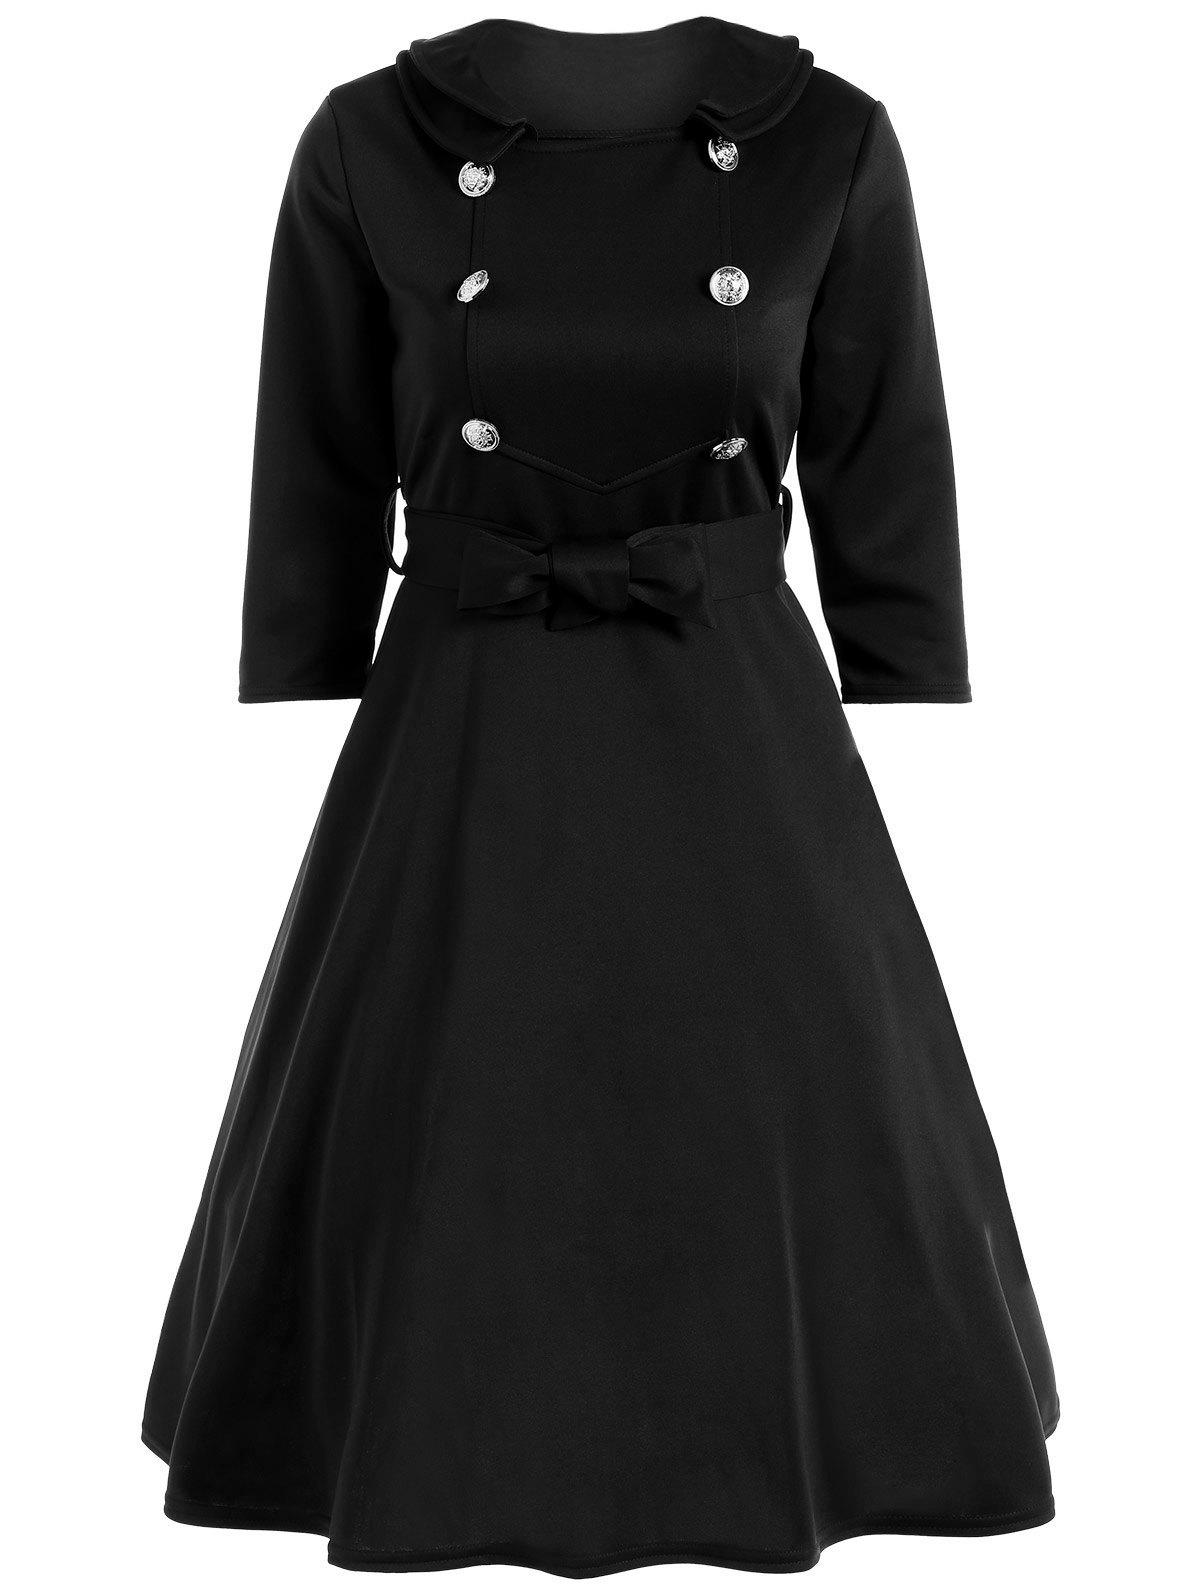 Fashion Bowknot Belted Swing Dress